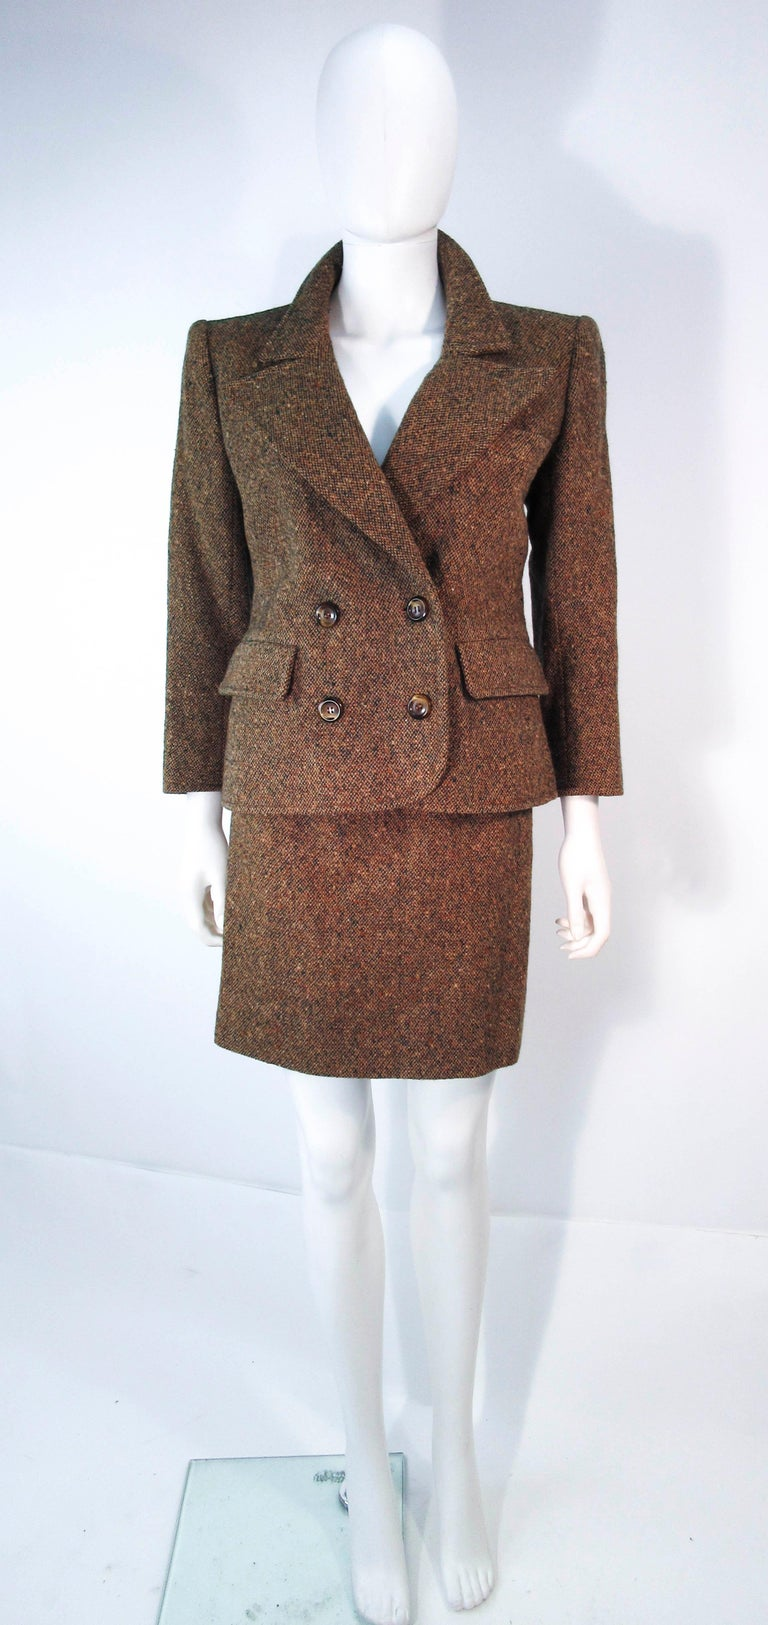 This Yves Saint Laurent suit is composed of a brown and green wool tweed. Features a beautiful classic double breasted blazer and a pencil skirt with zipper closure. In excellent vintage condition (some signs of wear due to age). Made in